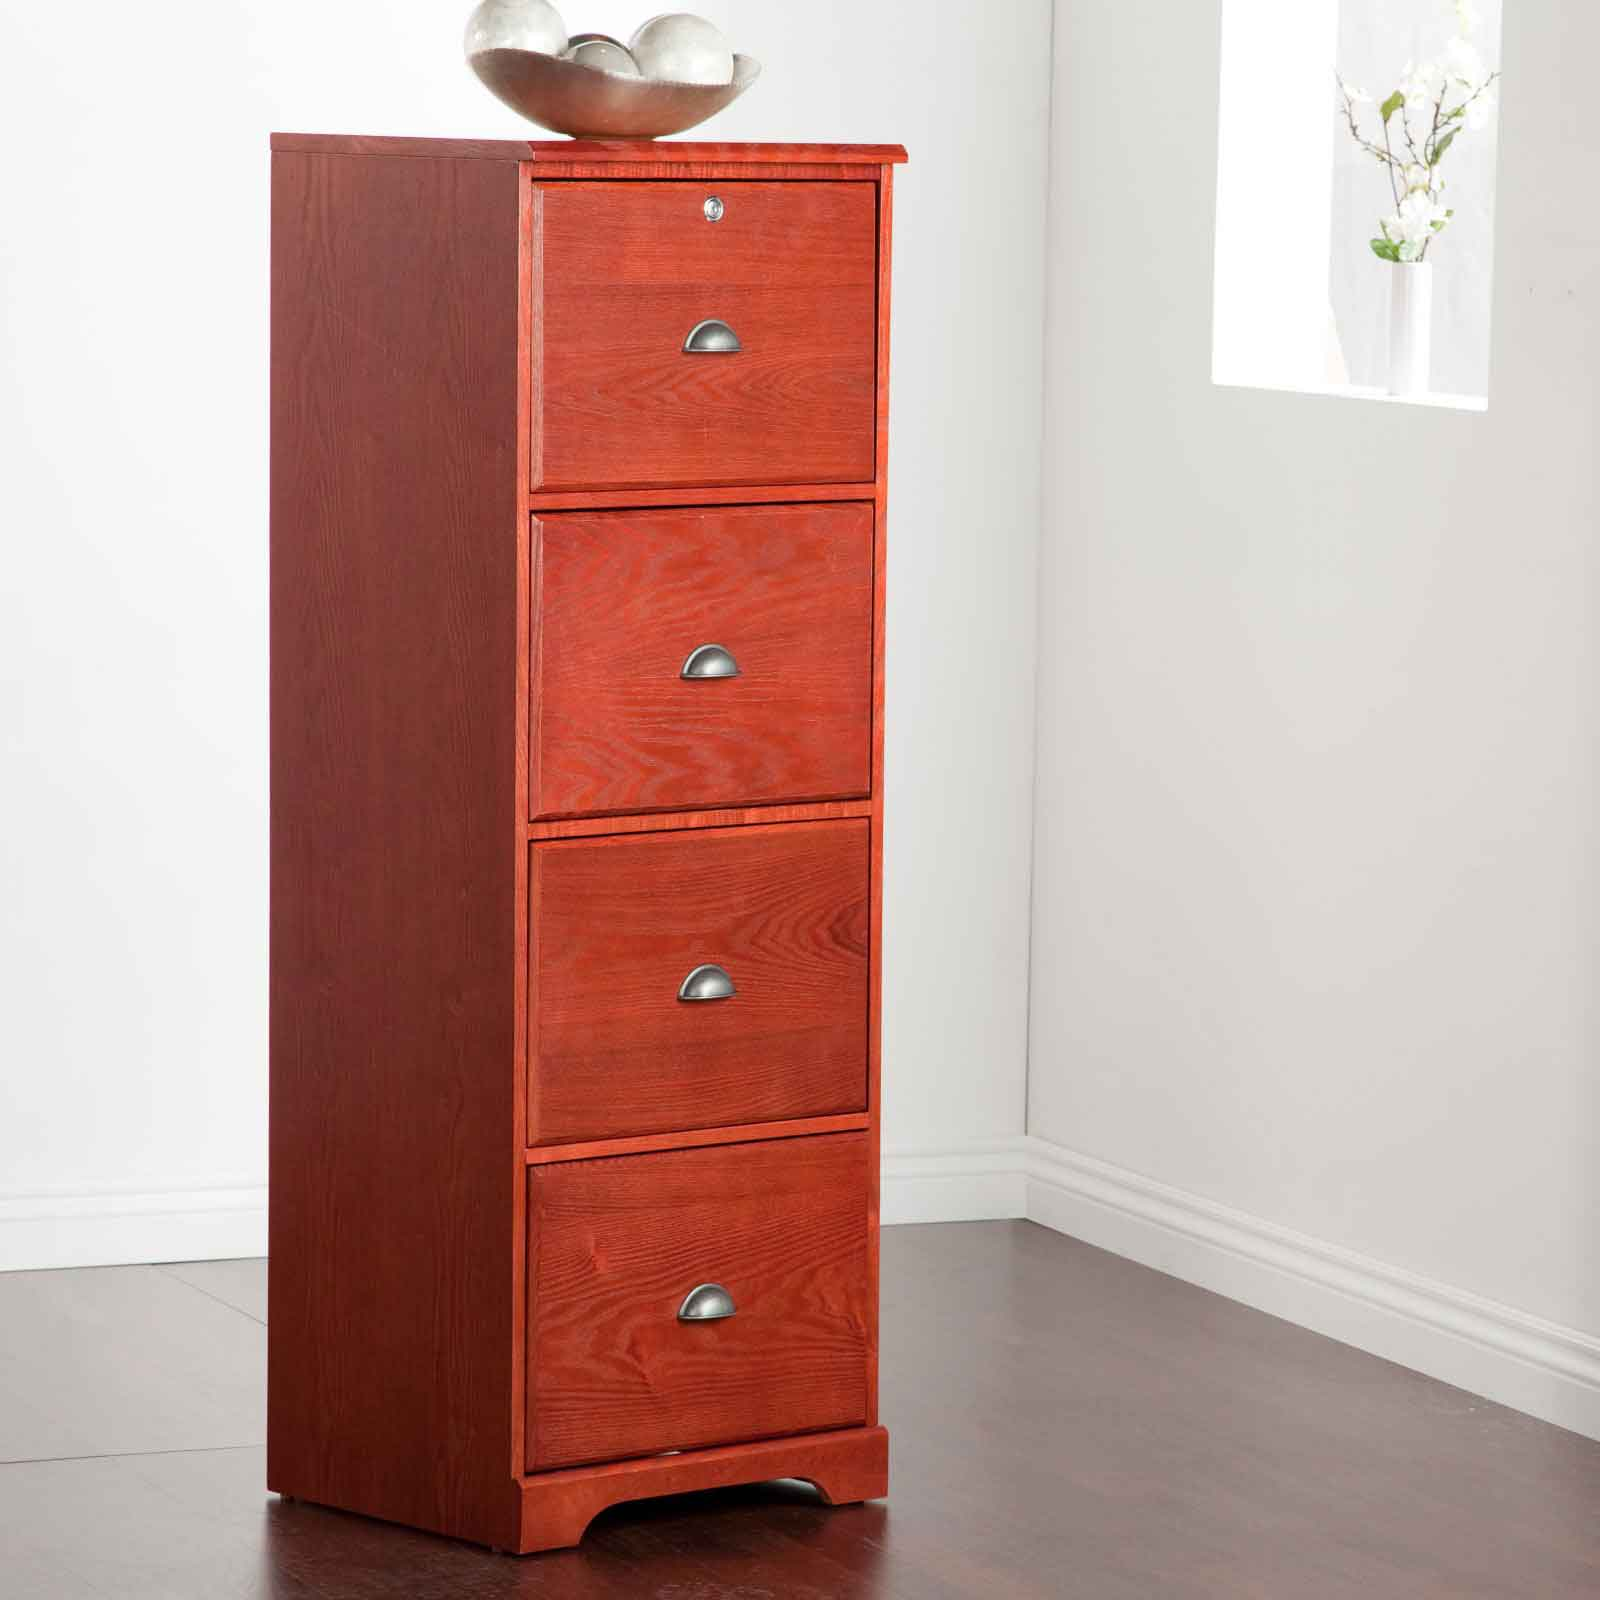 decorative file cabinets decorative filing cabinets for both style and function 14574